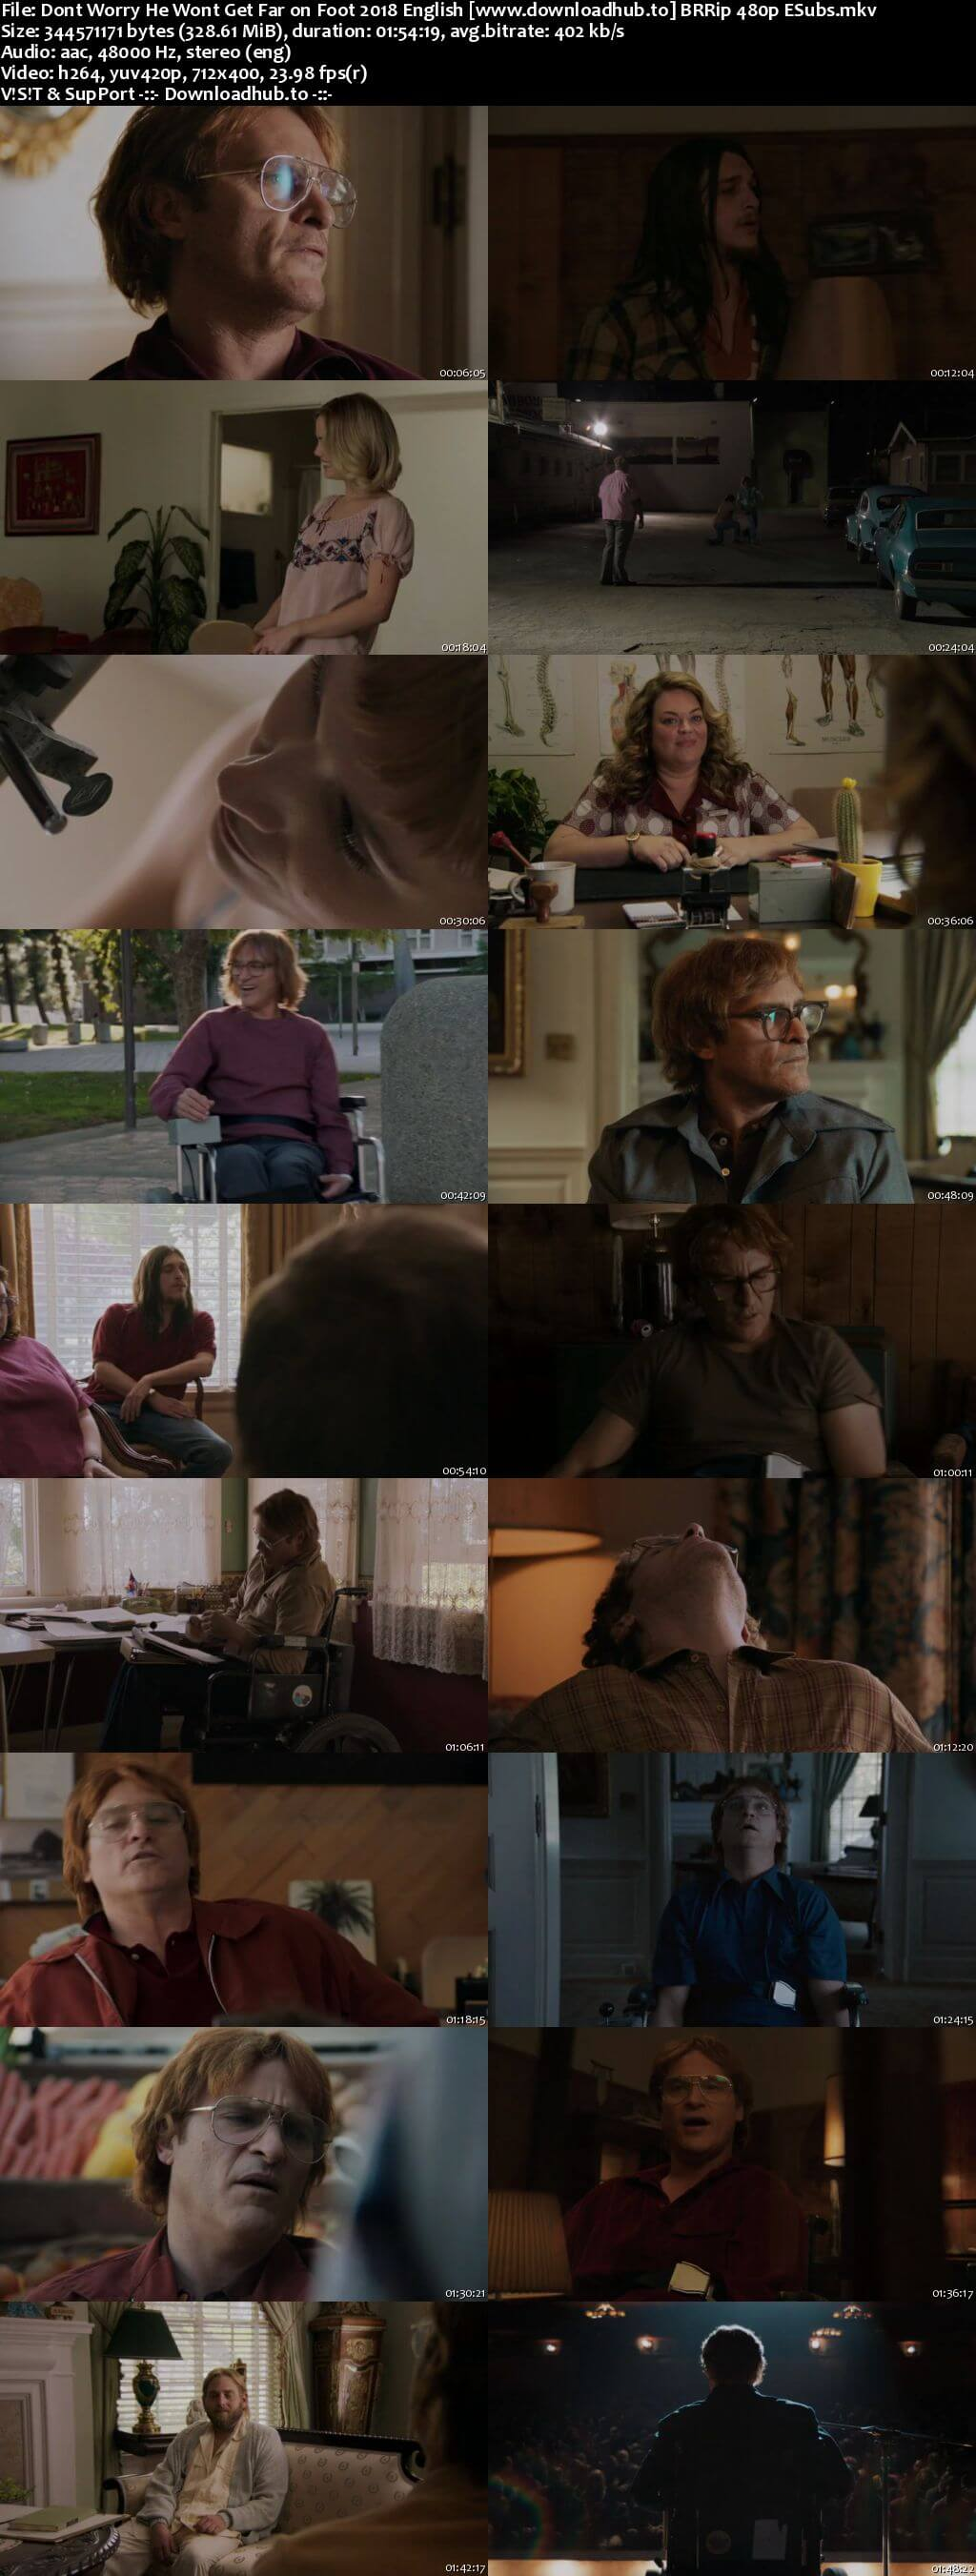 Dont Worry He Wont Get Far on Foot 2018 English 300MB BRRip 480p ESubs